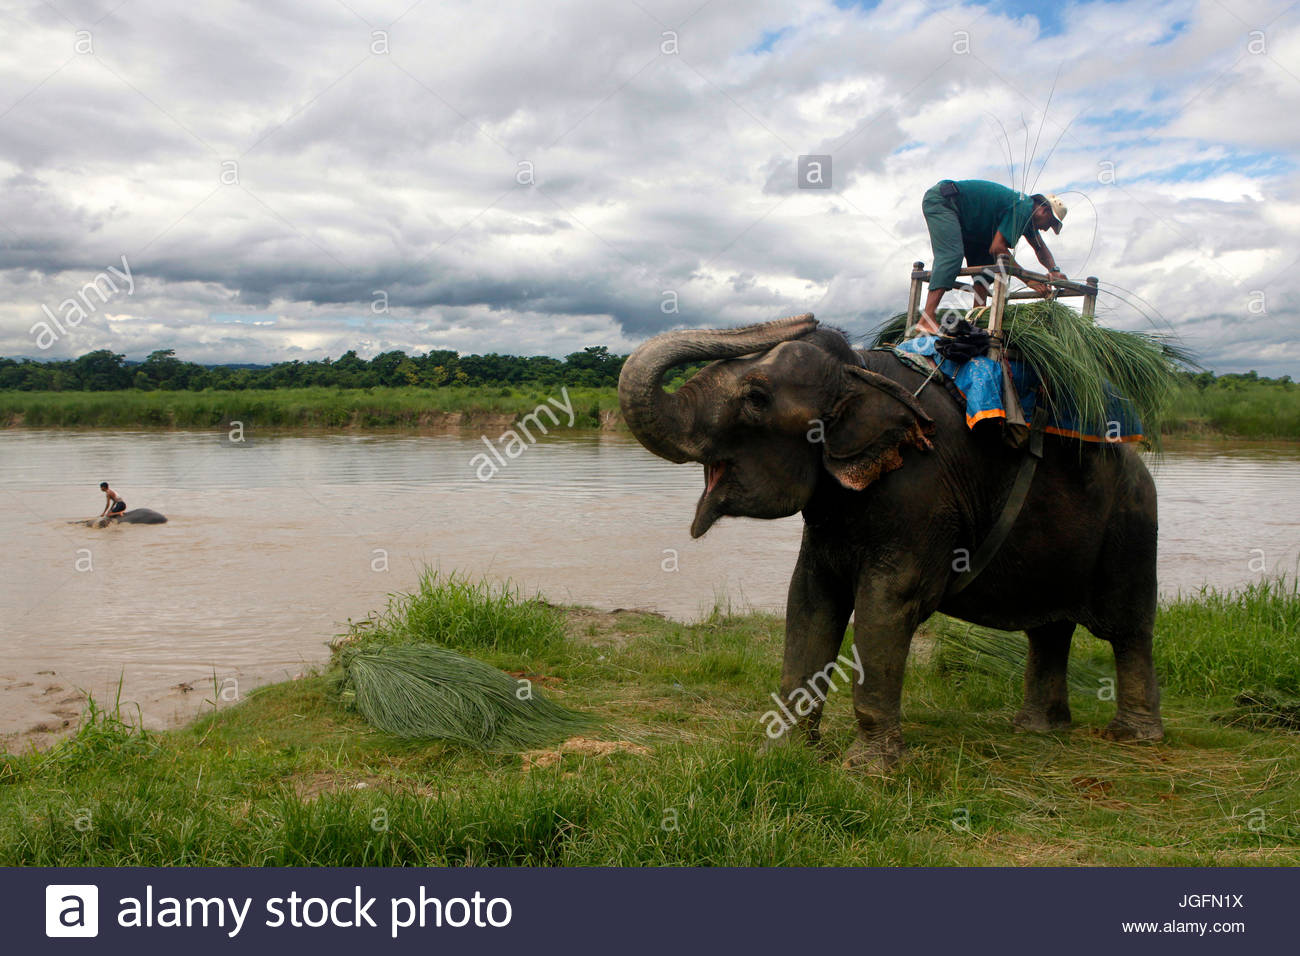 A Mahout climbs on top of his elephant, while another one bathes in the river. - Stock Image